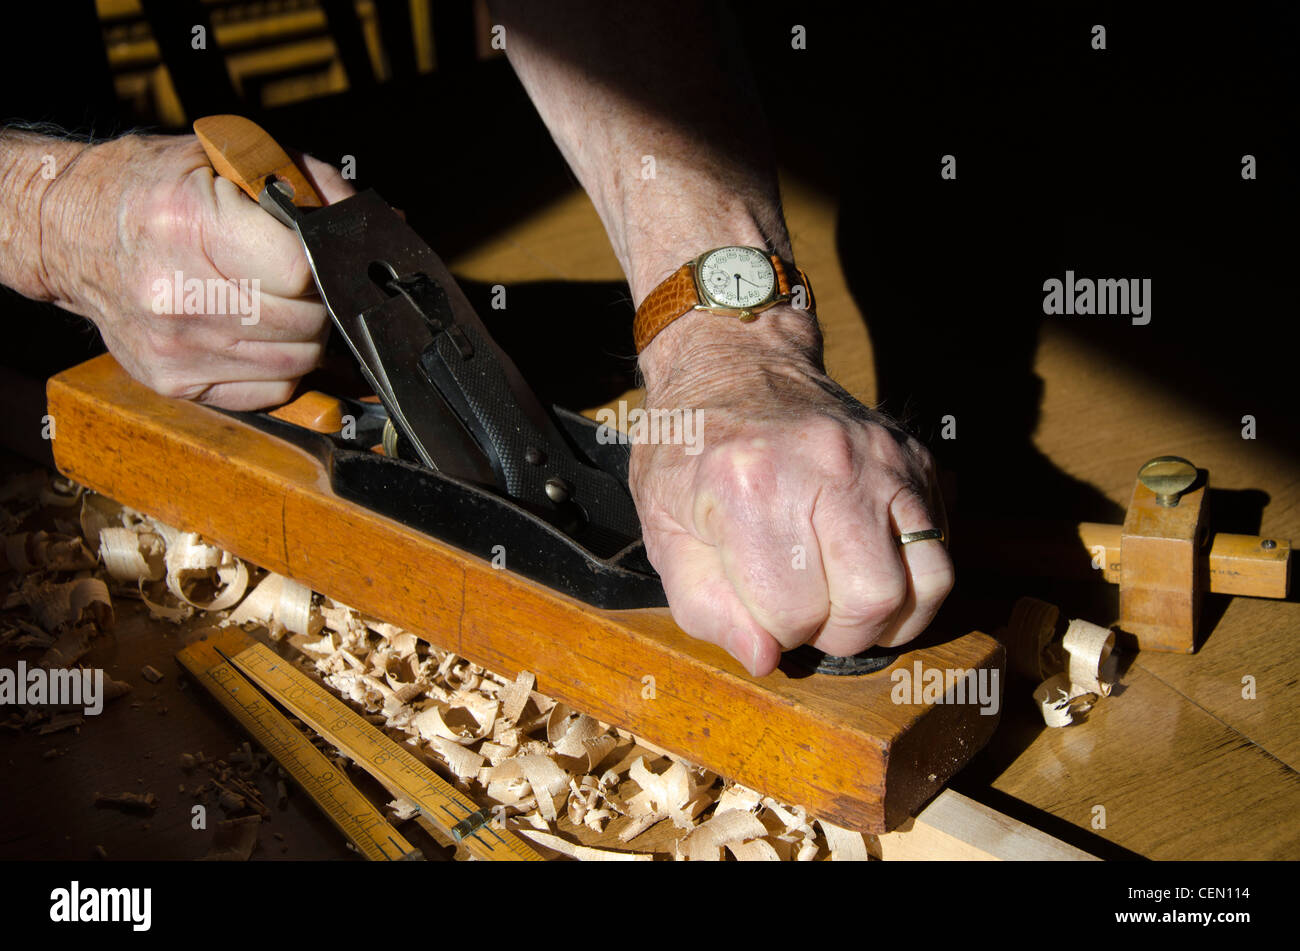 Close up of hands gripping an old wood Block Plane shaving a workpiece to size. Shavings and other old tools are Stock Photo